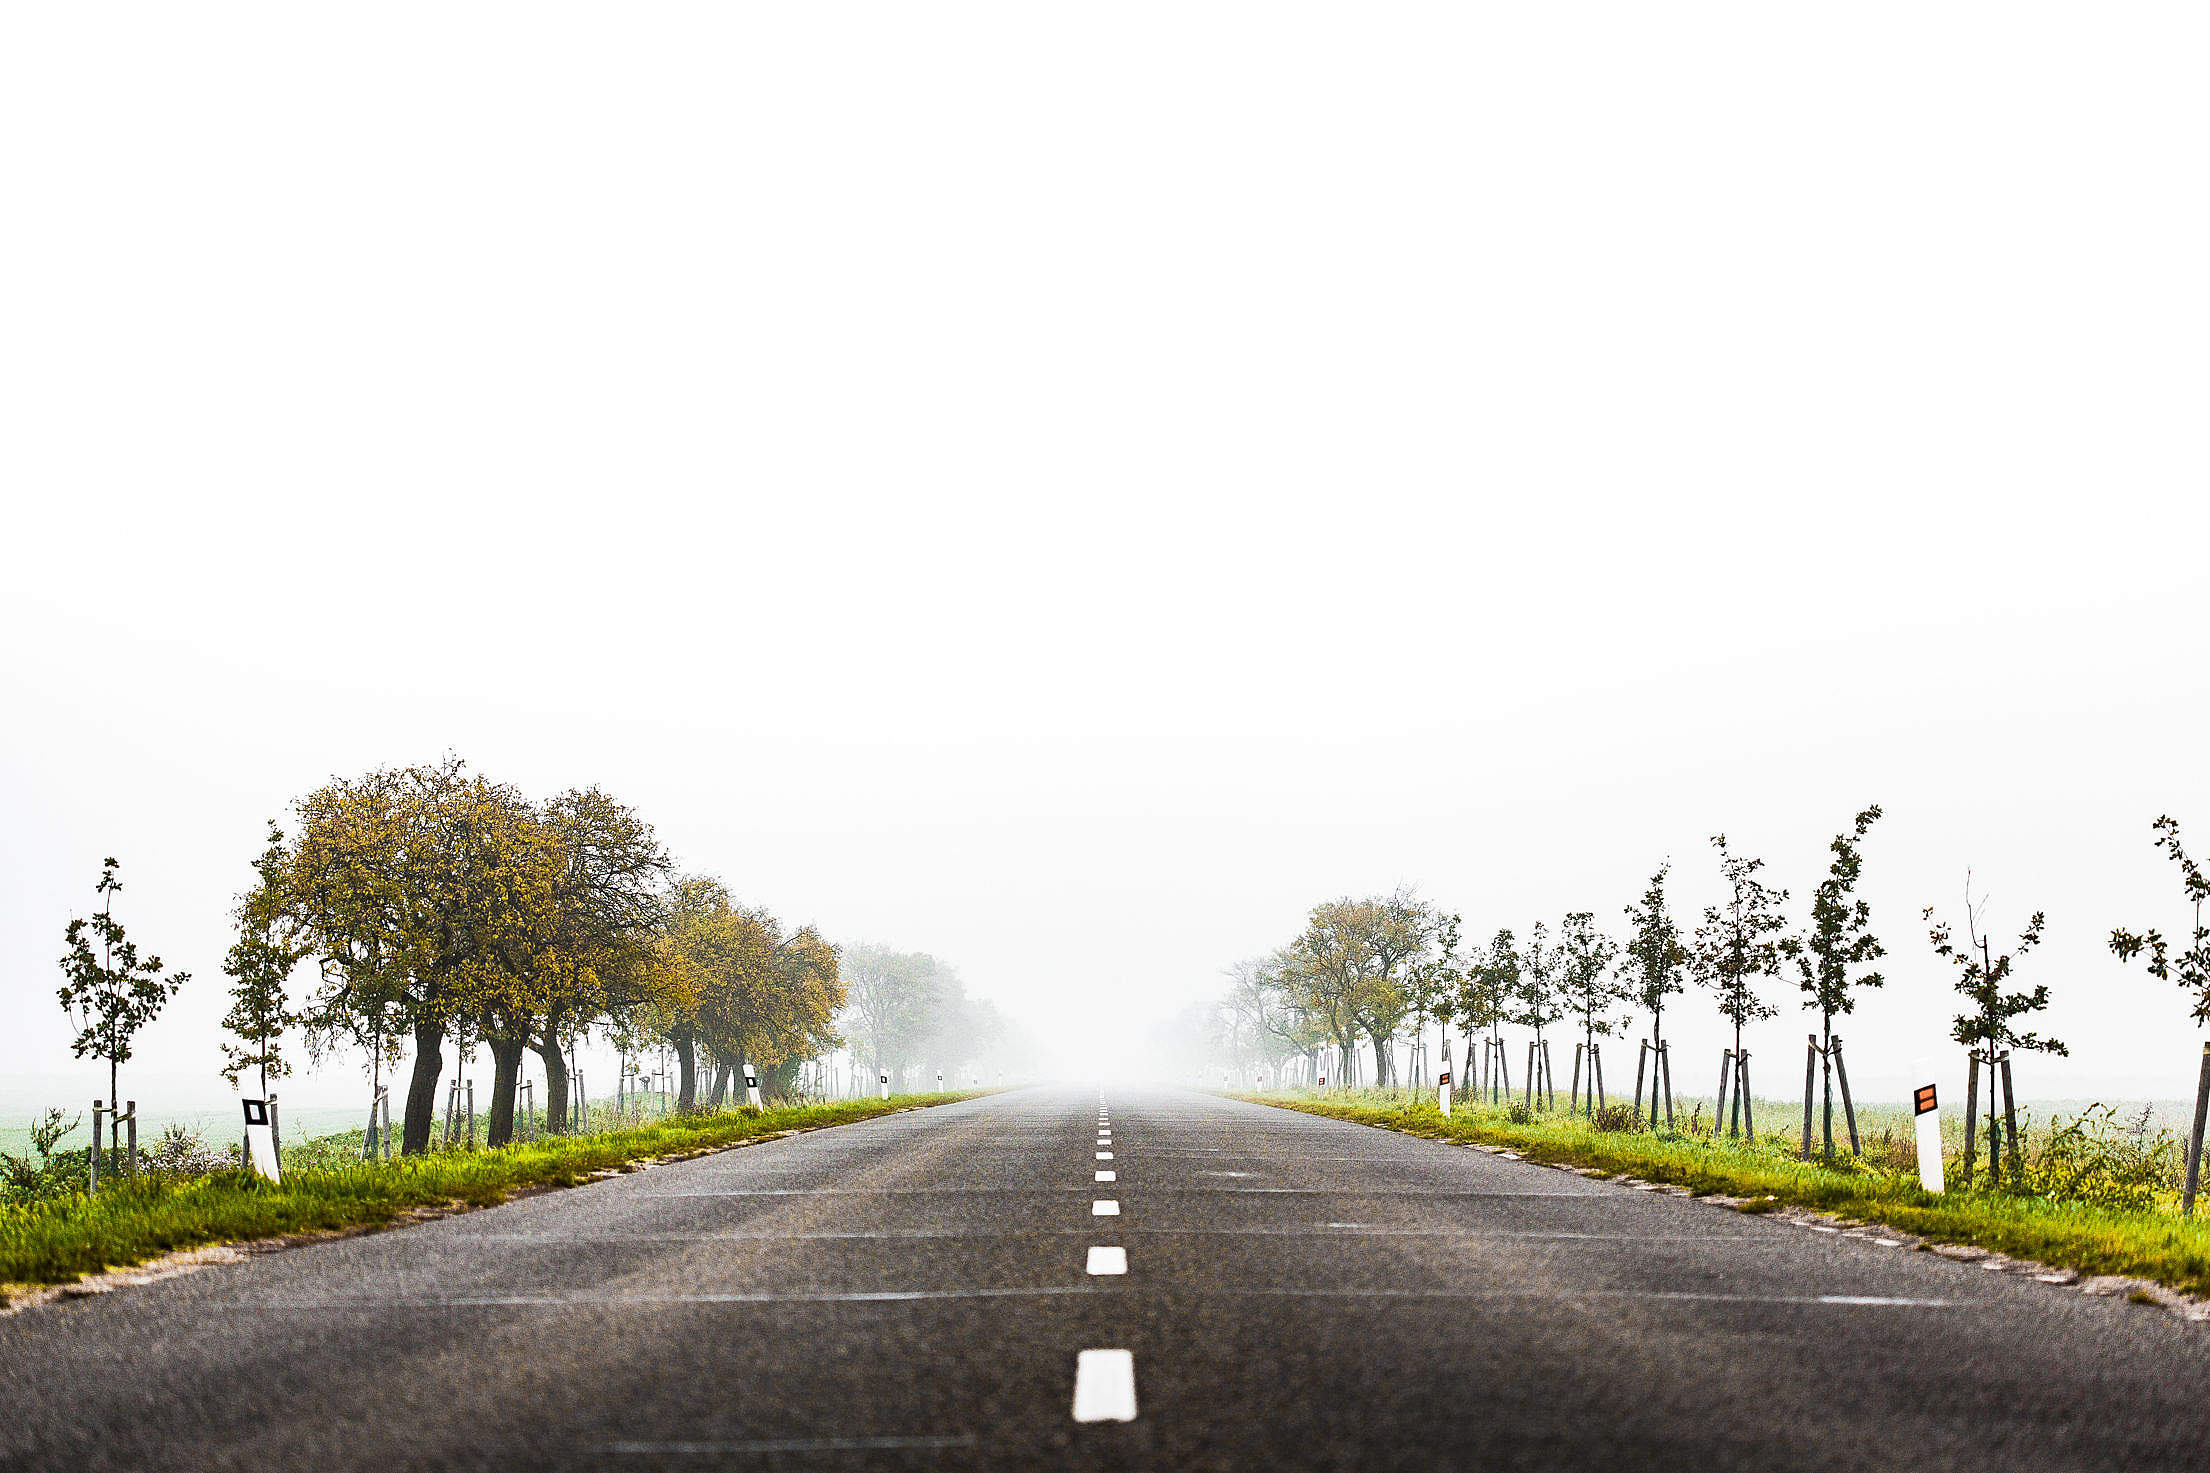 Foggy Road to Nowhere Free Stock Photo